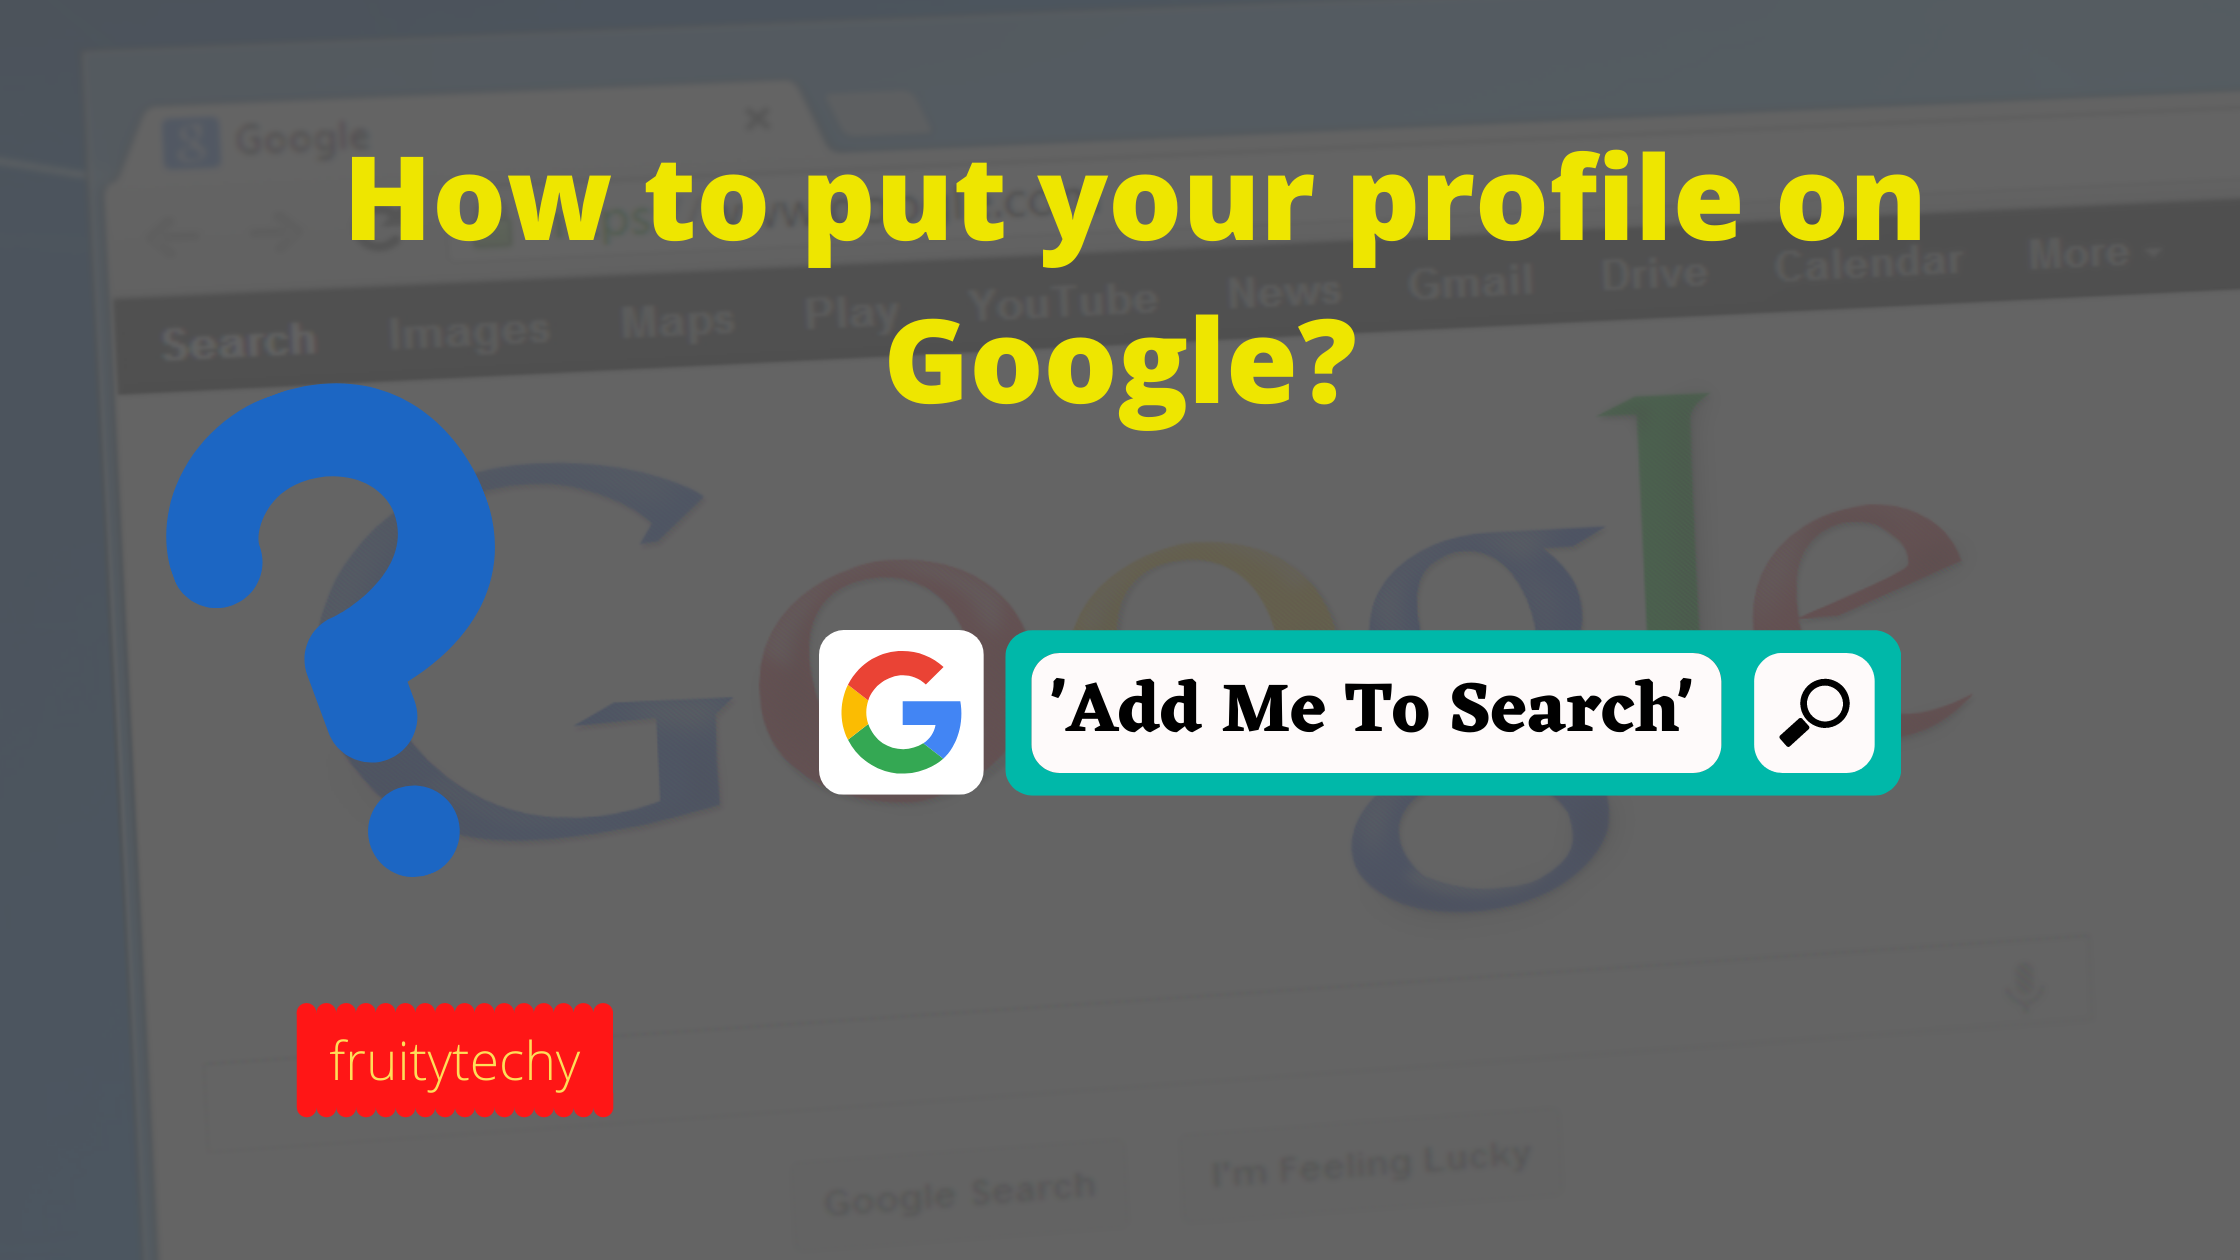 What Is Google Add Me To Search How To Put Your Profile On Google Ads Search Google